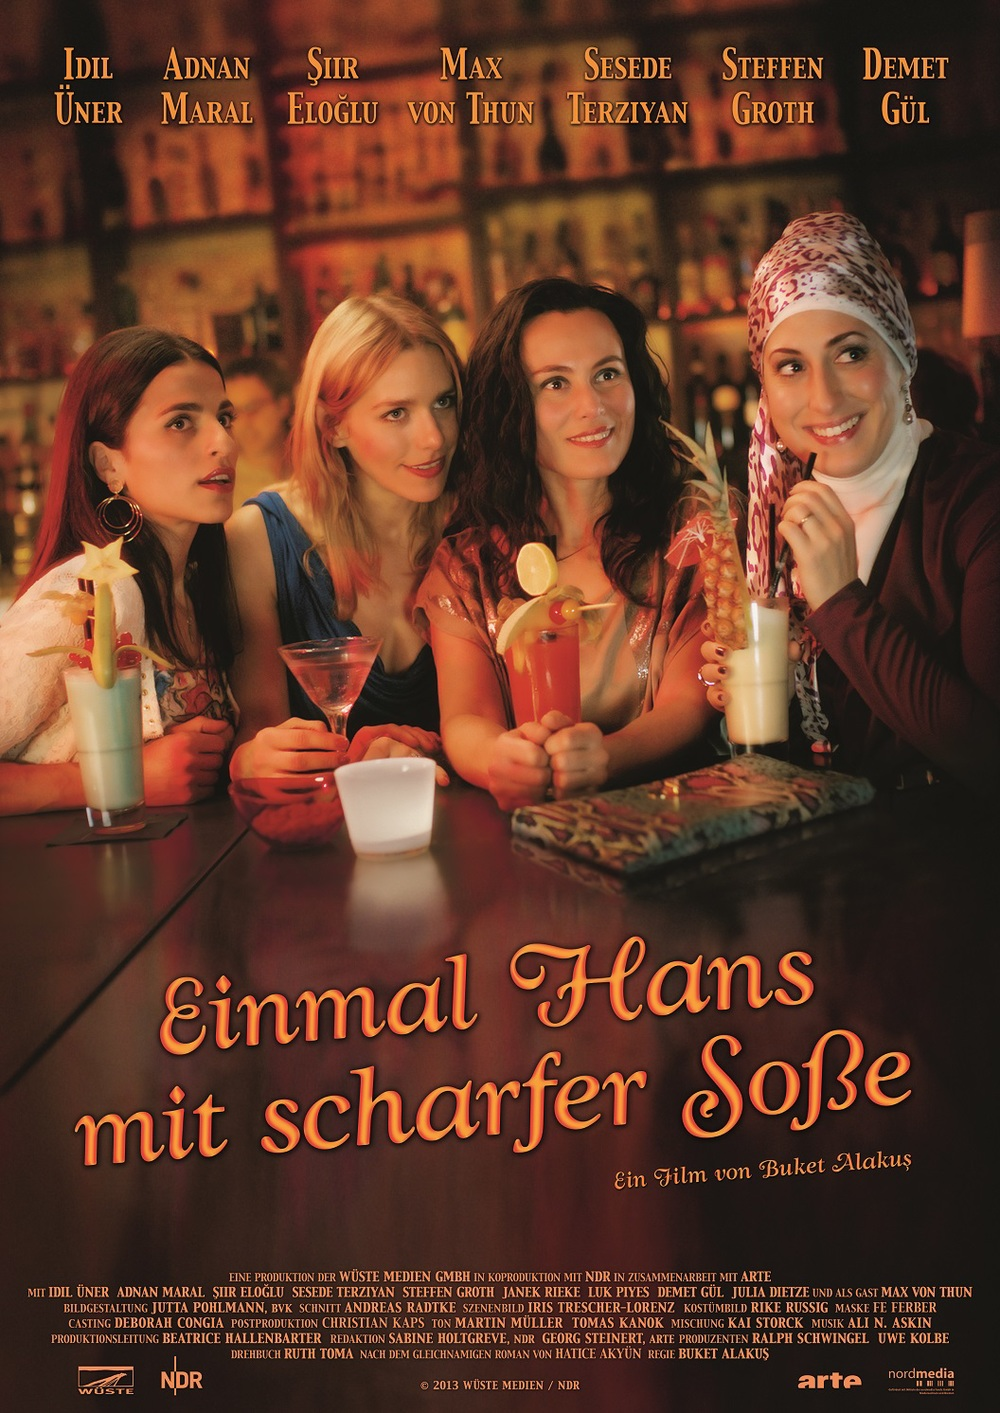 "Tomas appears in Buket Alakus' Turkish-German romantic comedy EINMAL HANS MIT SCHARFE SOSSE due to hit the cinemas JUNE 12th 2014.    View the trailer  here.    Excerpt from ArtistNetwork online magazine.  http://artistnetwork.de/einmal-hans-mit-scharfer-sose-autorin-hatice-akyun-uber-julia-dietze/  Hatice Akyün:""The adaption of my book (""Einmal Hans mit scharfer Soße"") for the movie is a dream come true. The script is amazing and the actors are more than I could have dreamed of. The story is modern, romantic and very funny. The director Buket Alakus put a lot of commitment into the movie. She is an awesome director whose Turkish soul and German craft made the movie a very special piece. I met Julia Dietze for the first time at the premiere of ""Einmal Hans mit scharfer Soße"". I swear – as the Turkish would say – I thought I would meet my longtime friend Julia. Julia has beautiful blonde hair and sparkling blue eyes. But most of all she has (just like the ""real"" Julia) a Turkish soul. Her acting skills in ""Einmal Hans mit scharfer Soße"" are refreshing and authentic. She has to take part in the sequel as well.""  P.S. The sequel was just published: ""I kiss you, Kismet"" – for everyone, who wants even more German-Turkish stories. This is our book recommendation of the month."